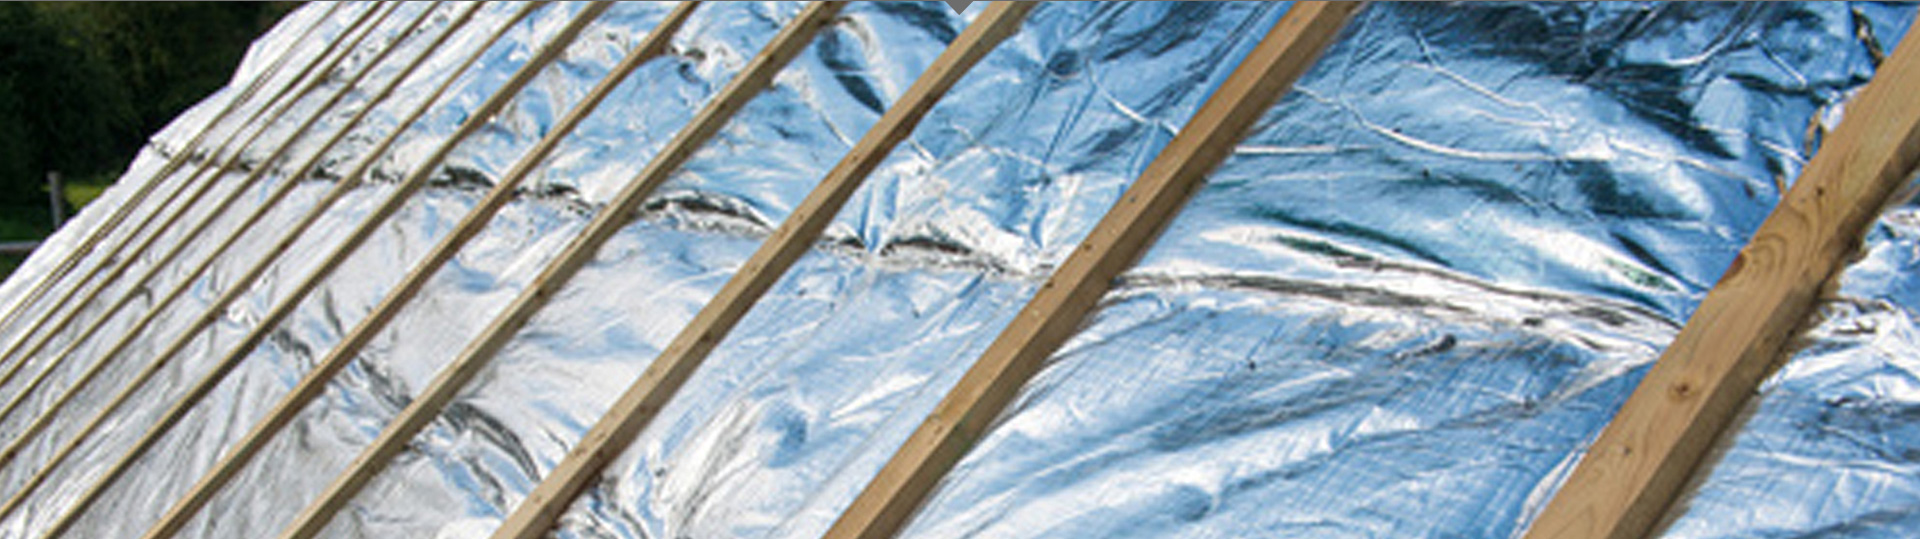 ACTIS roof insulation